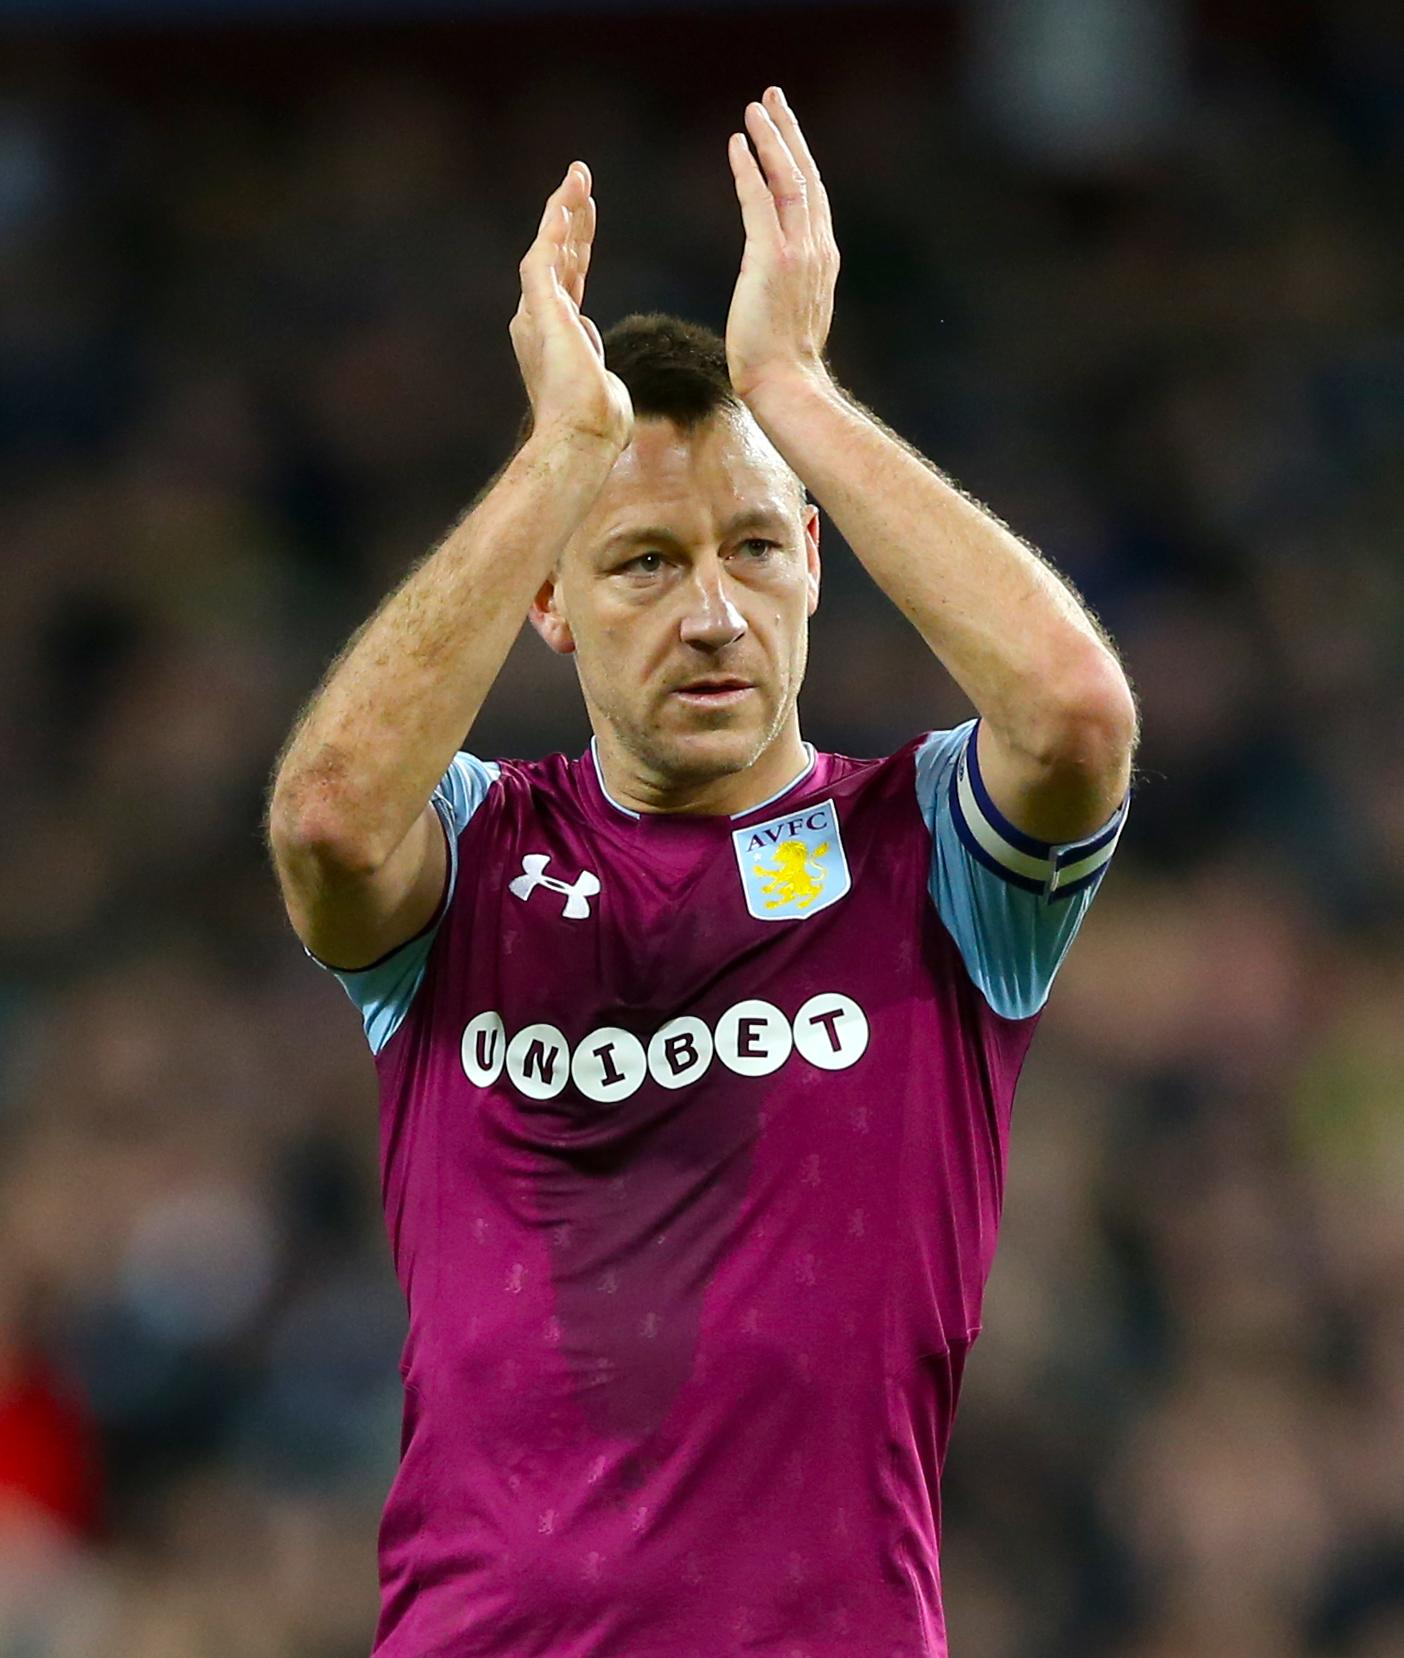 Terry, 37, is currently a free agent after leaving Championship side Aston Villa after just one season